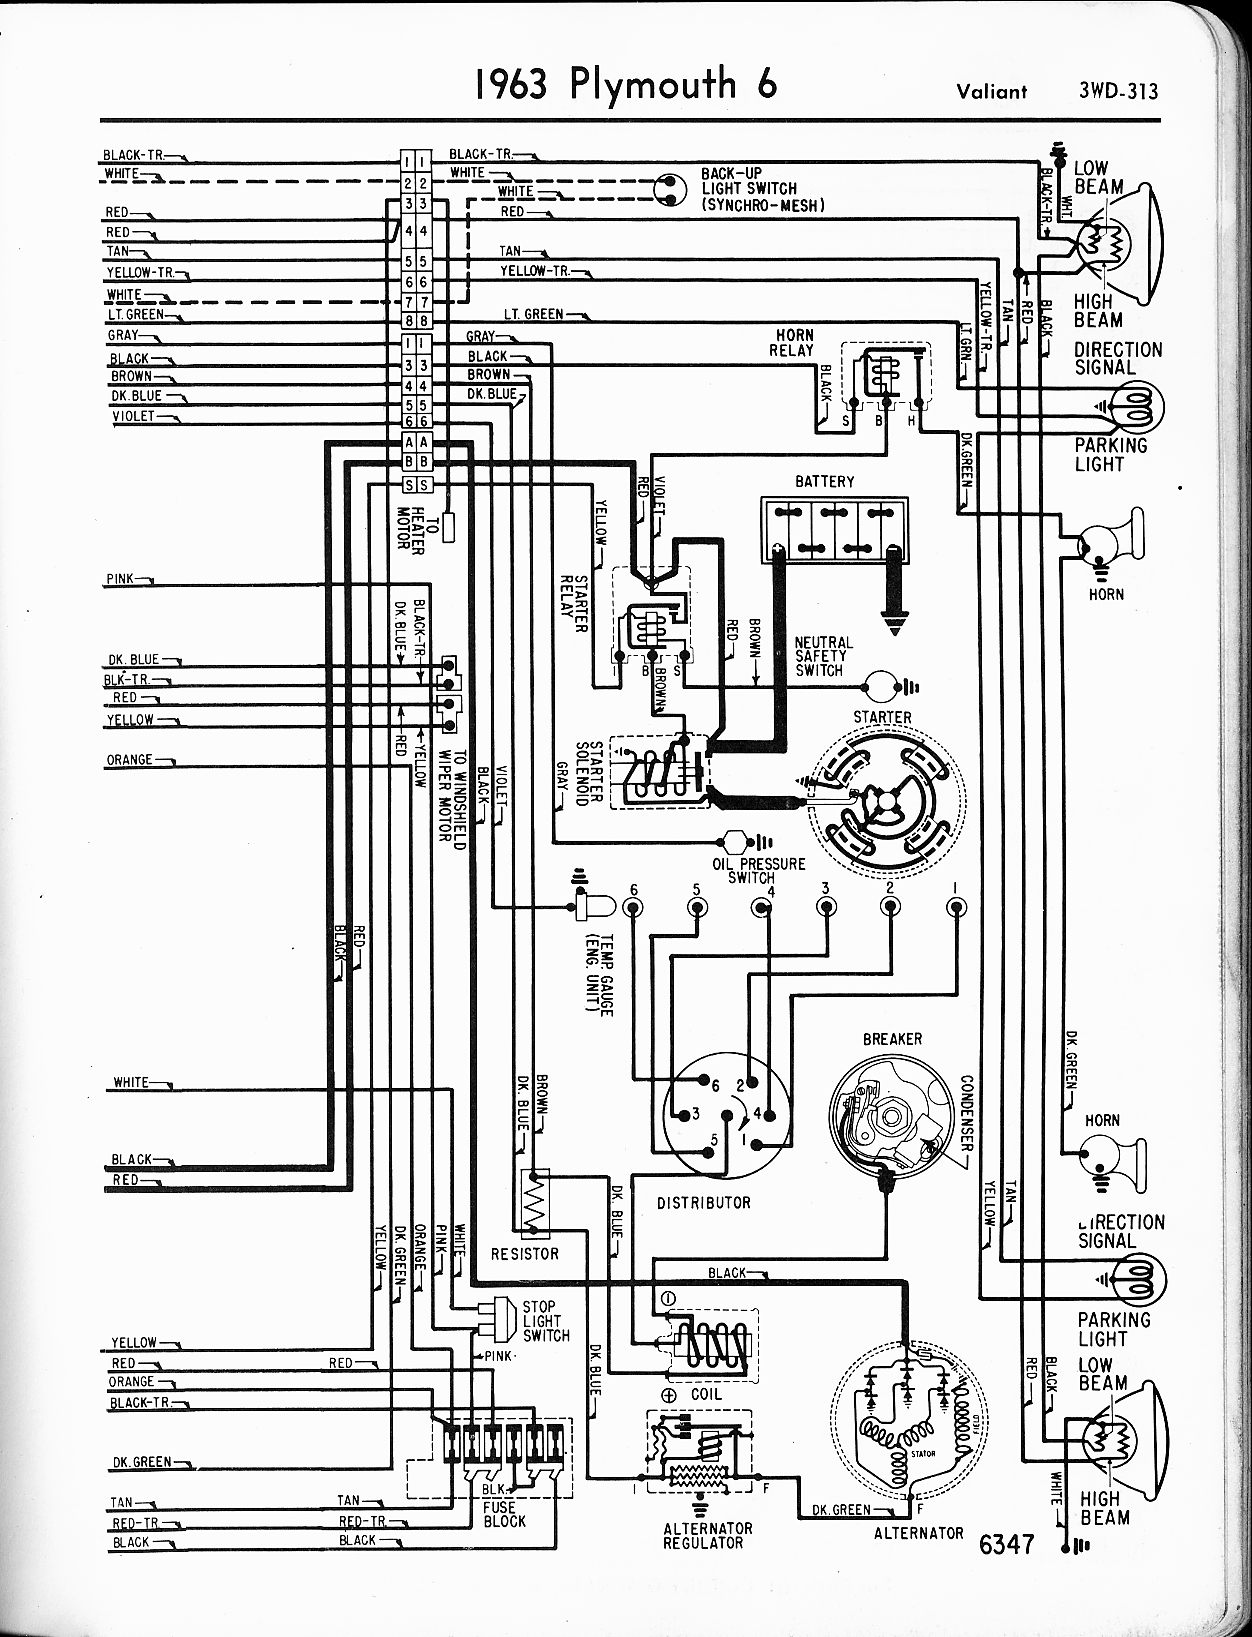 Doc Diagram Nova Headlight Wiring Diagram Ebook